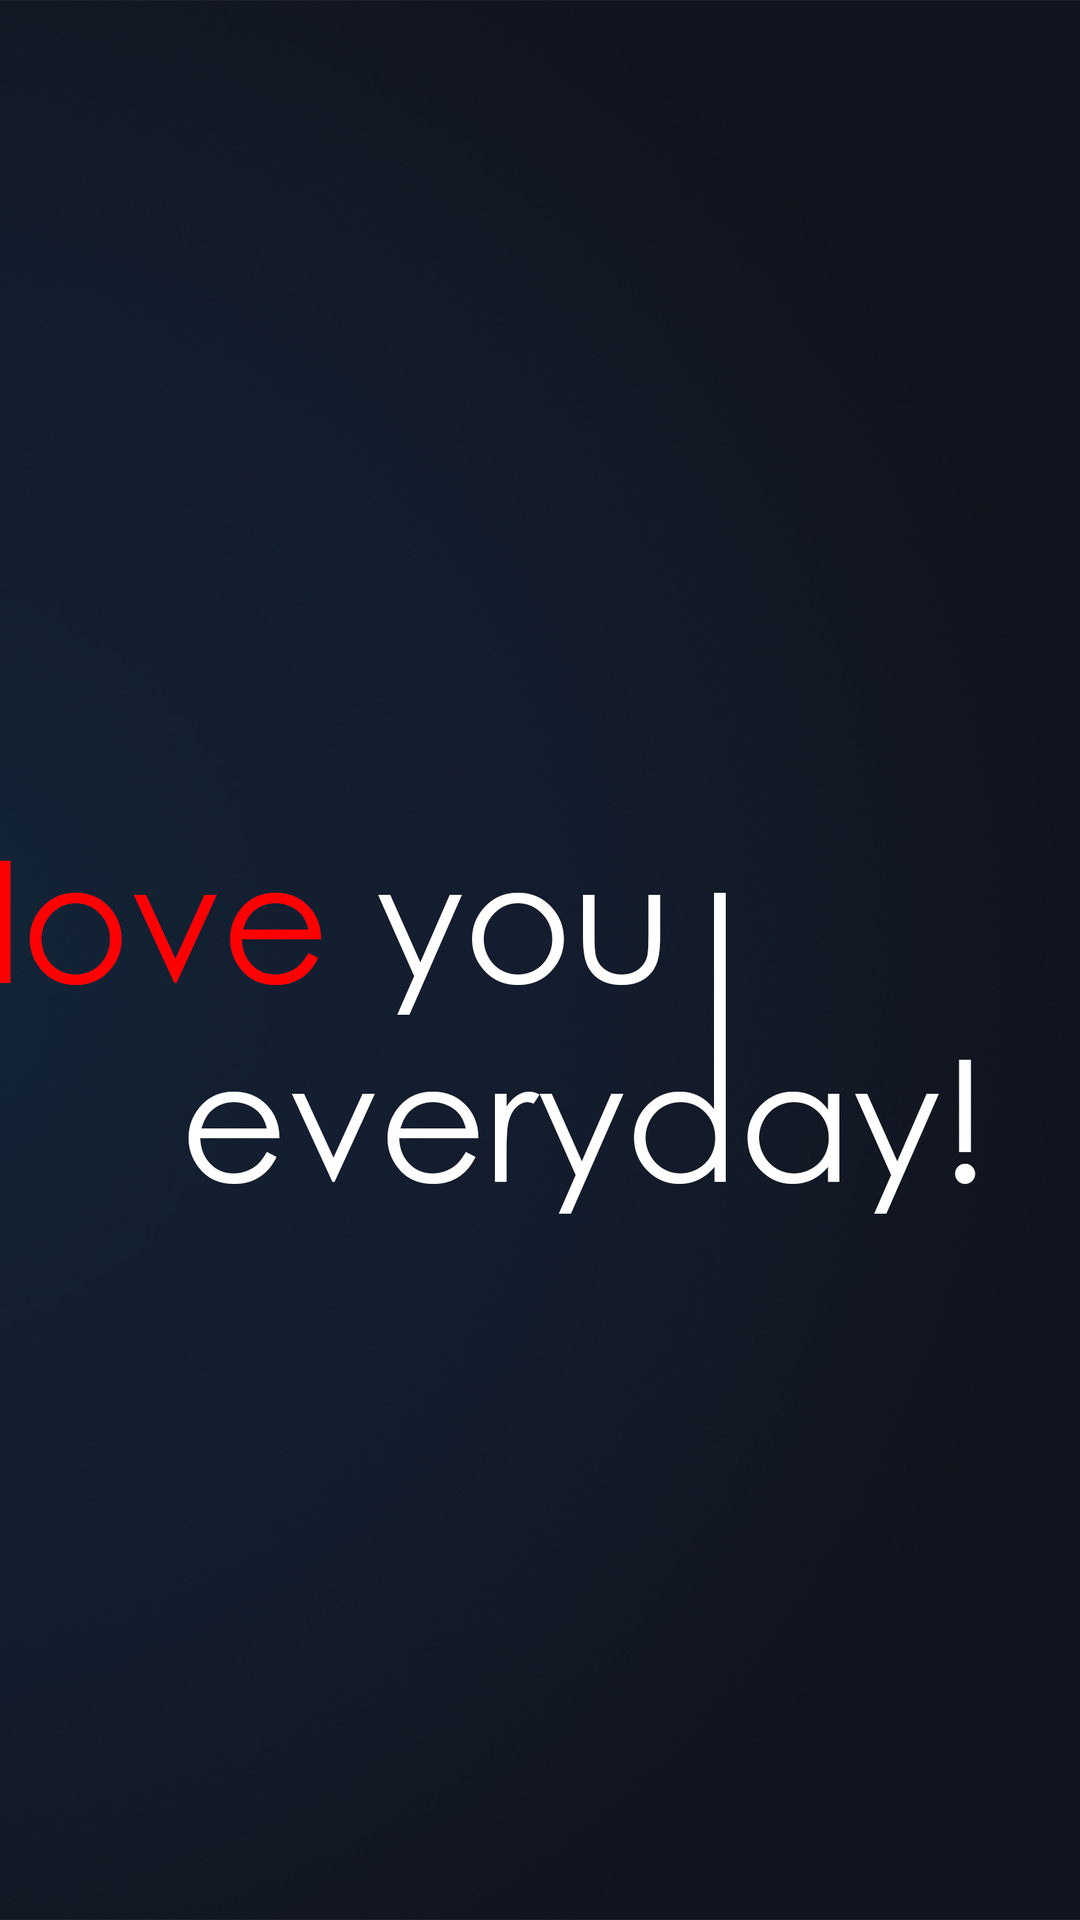 Love You Everyday Android Wallpaper